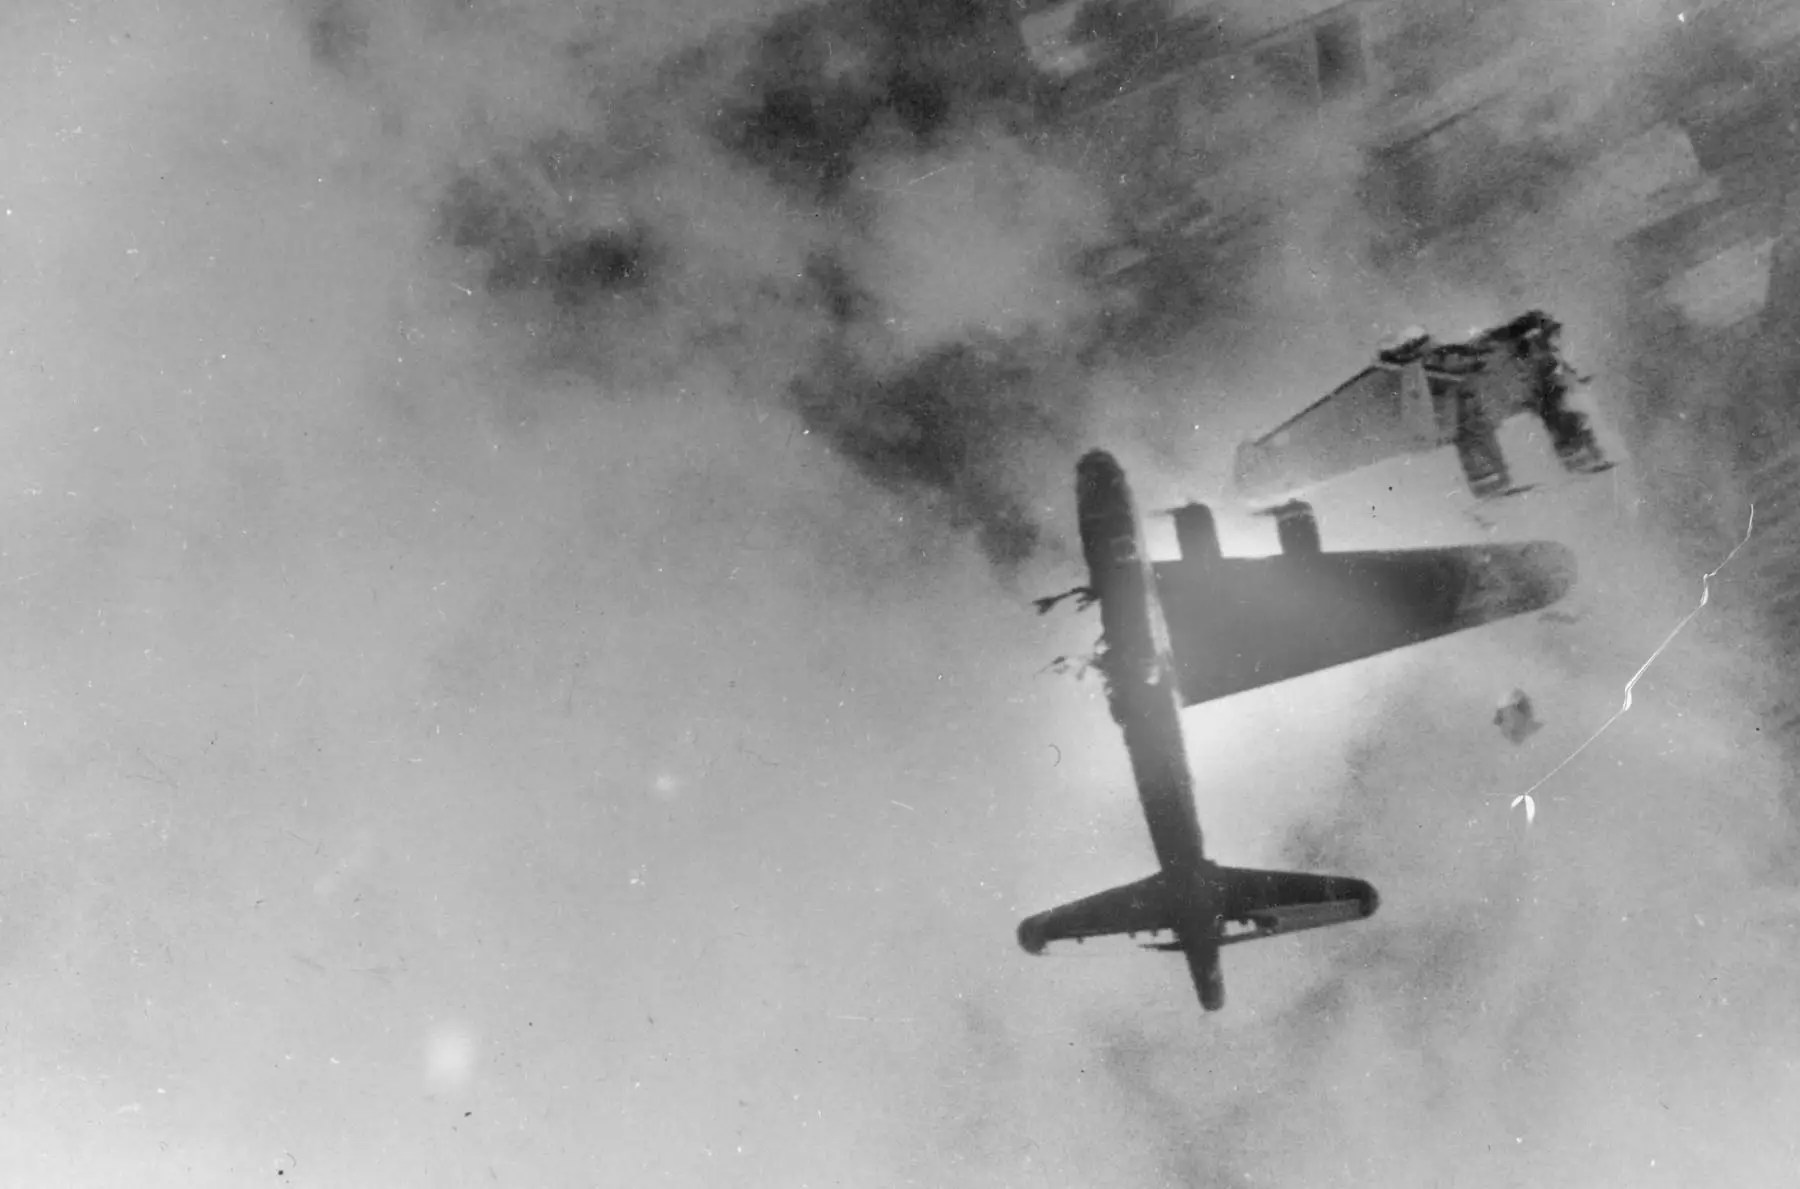 . Over 100,000Allied bomber crewmen were killed ove